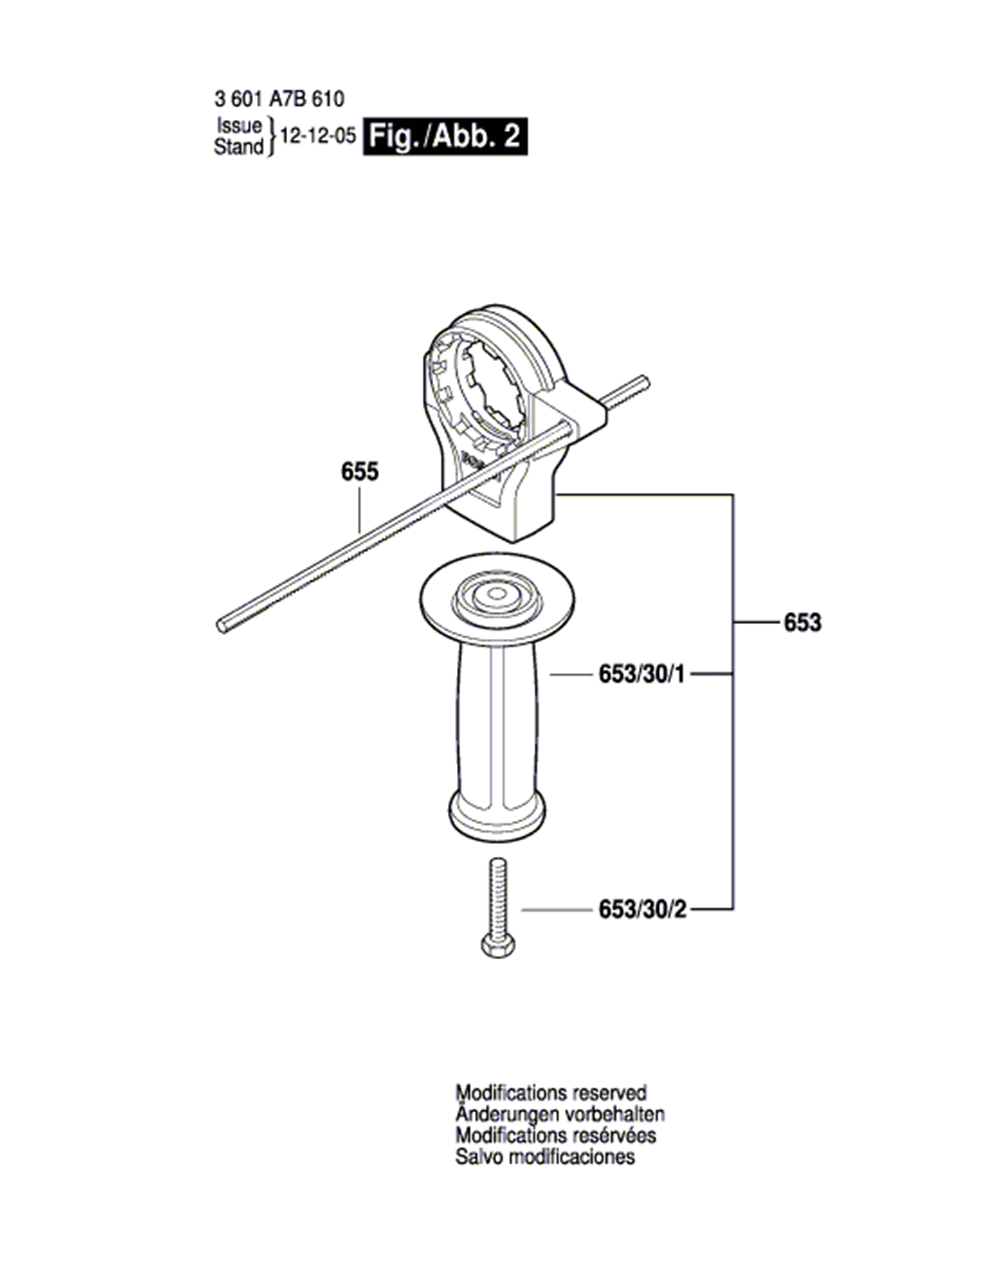 HD19-2L(3601A7B612)-bosch-PB-1Break Down